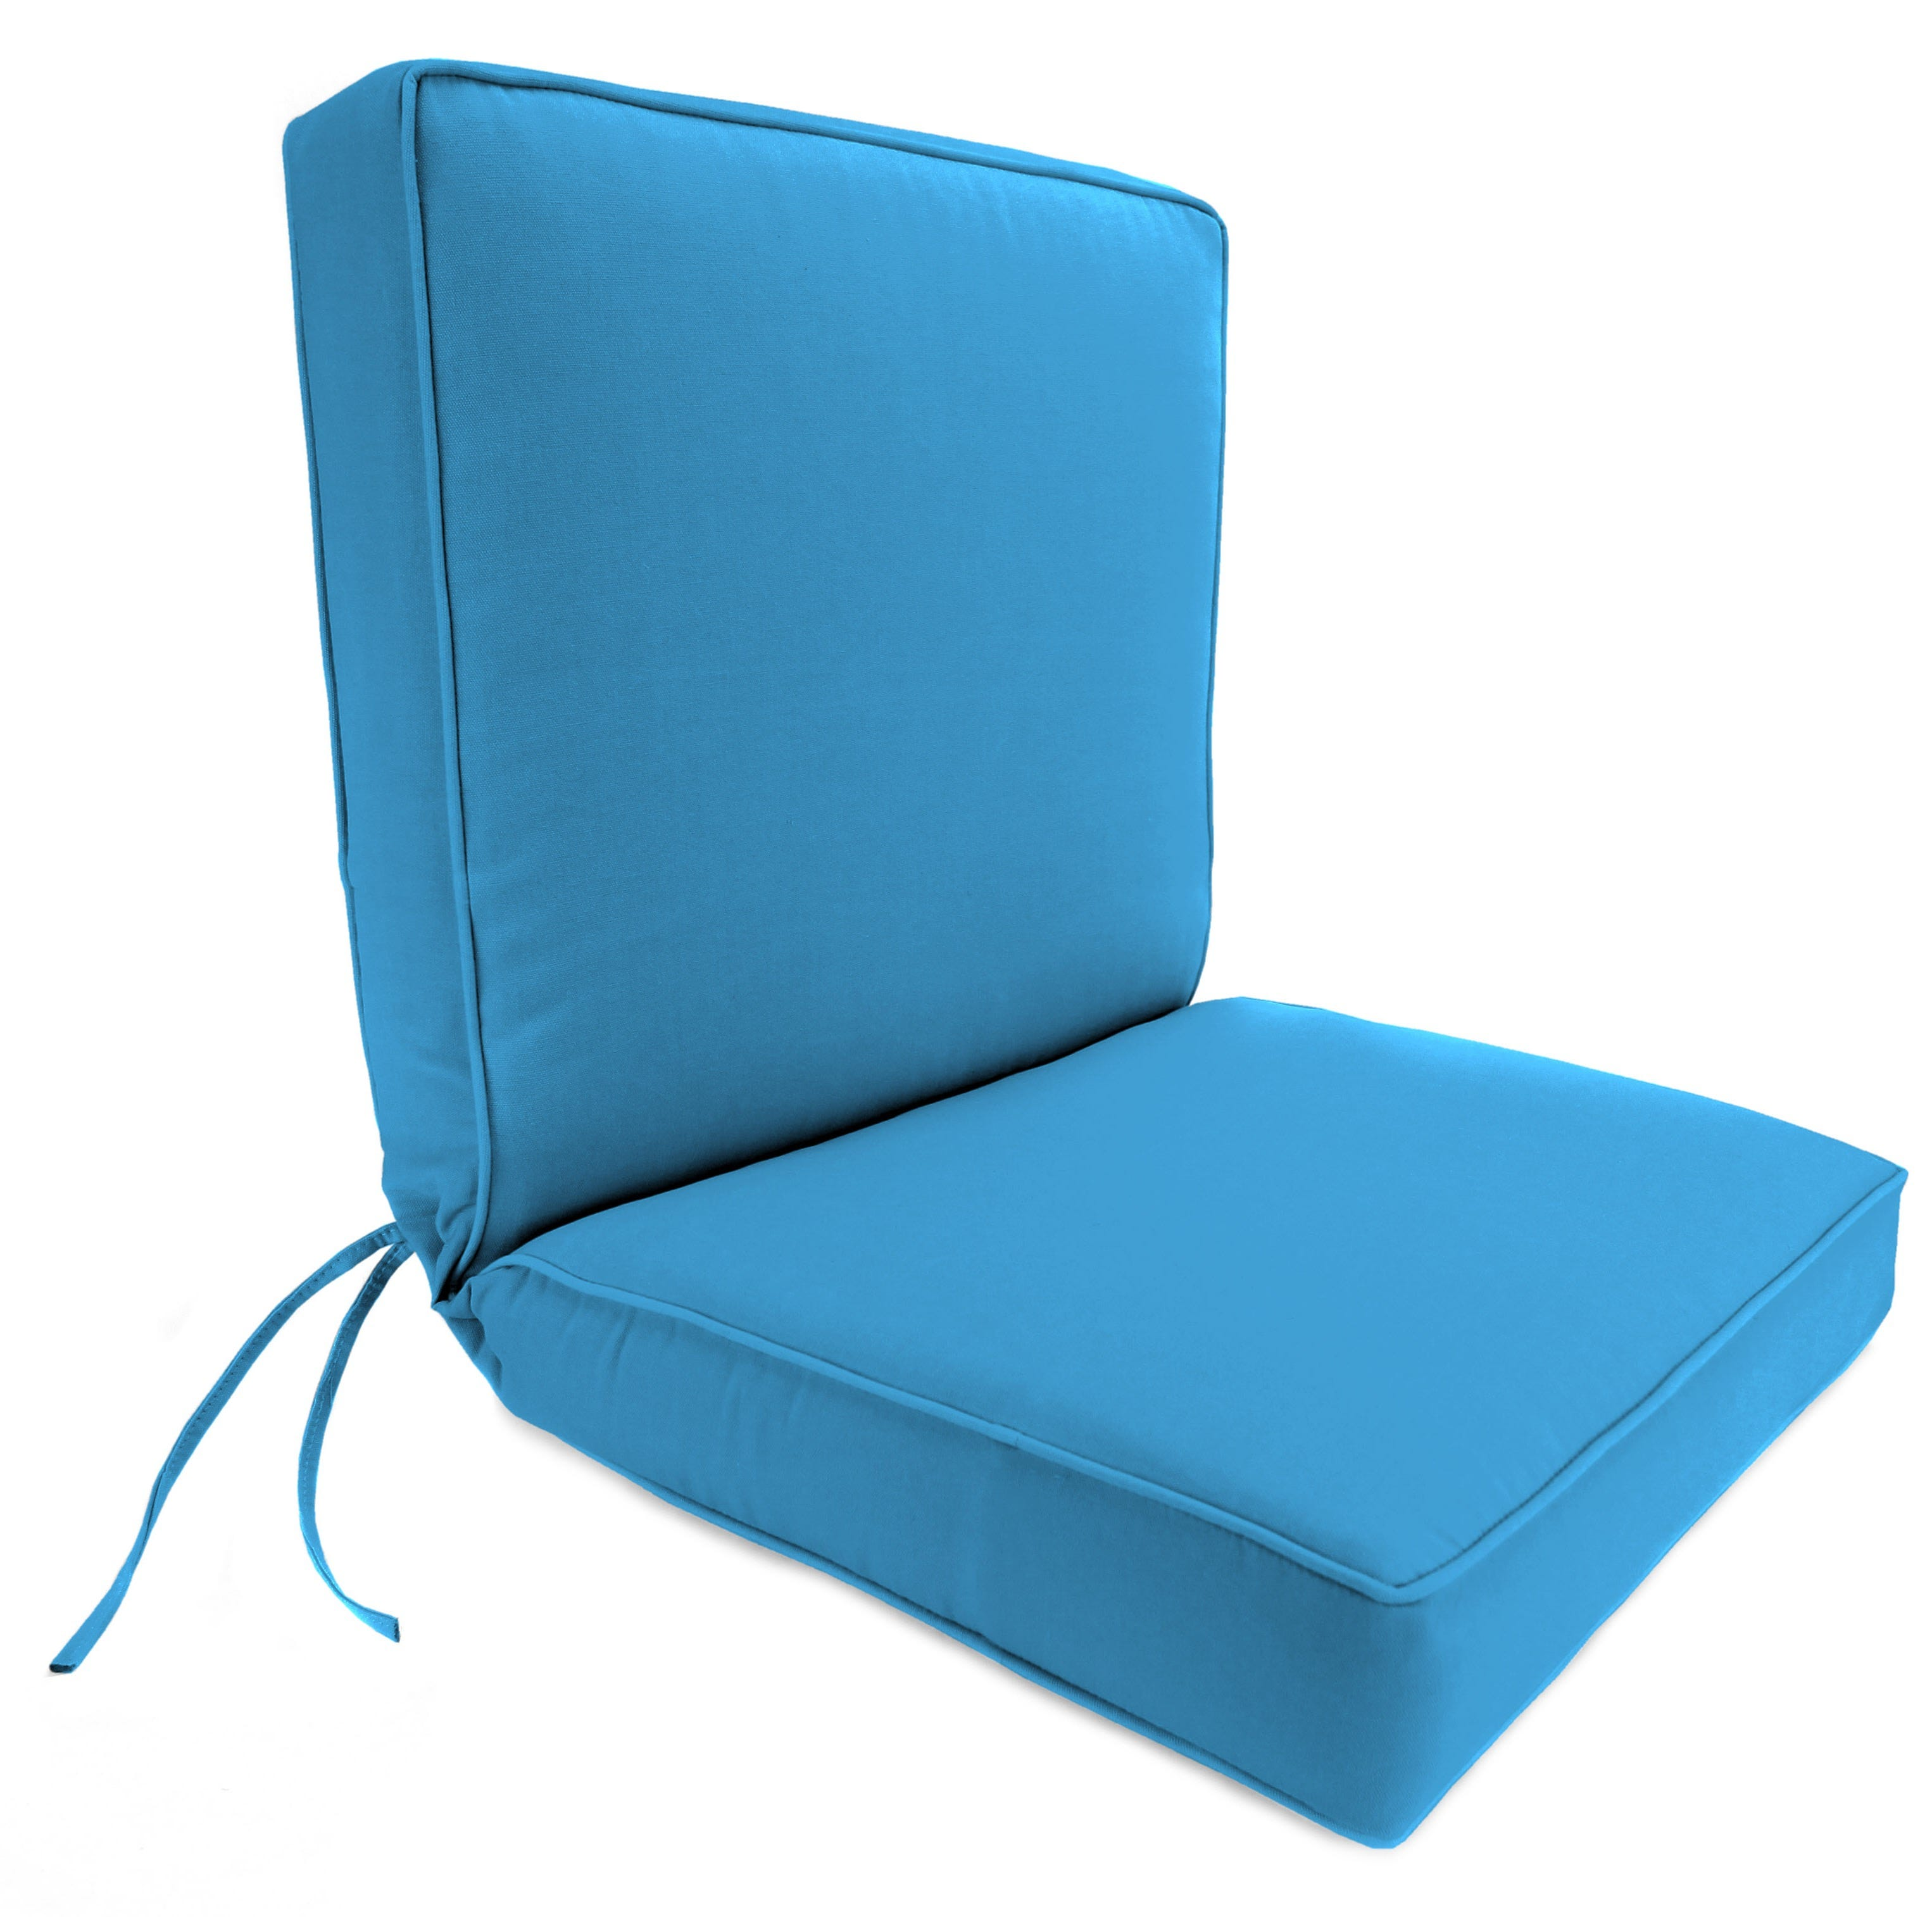 High Back Chair Cushion 46 By 22 Inches From Sportys Preferred